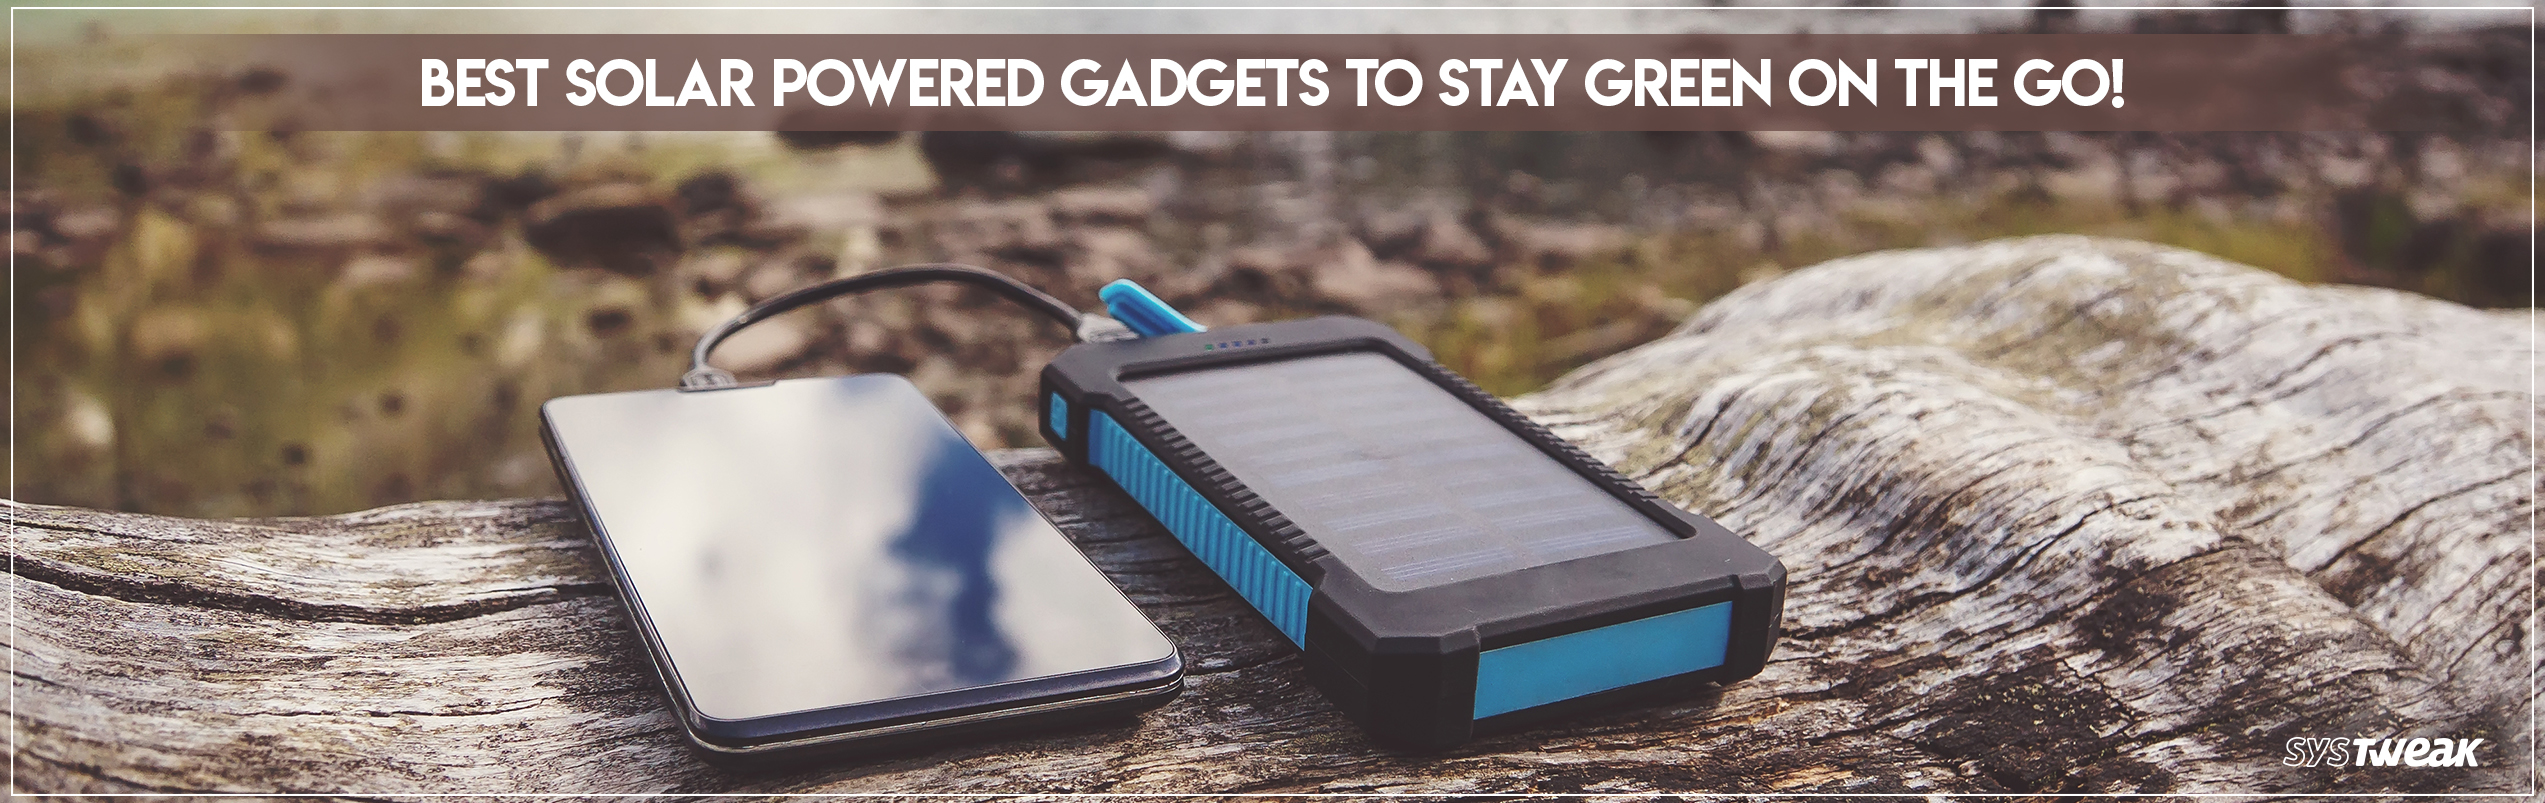 7 Best Solar Powered Gadgets Every Home Should Have